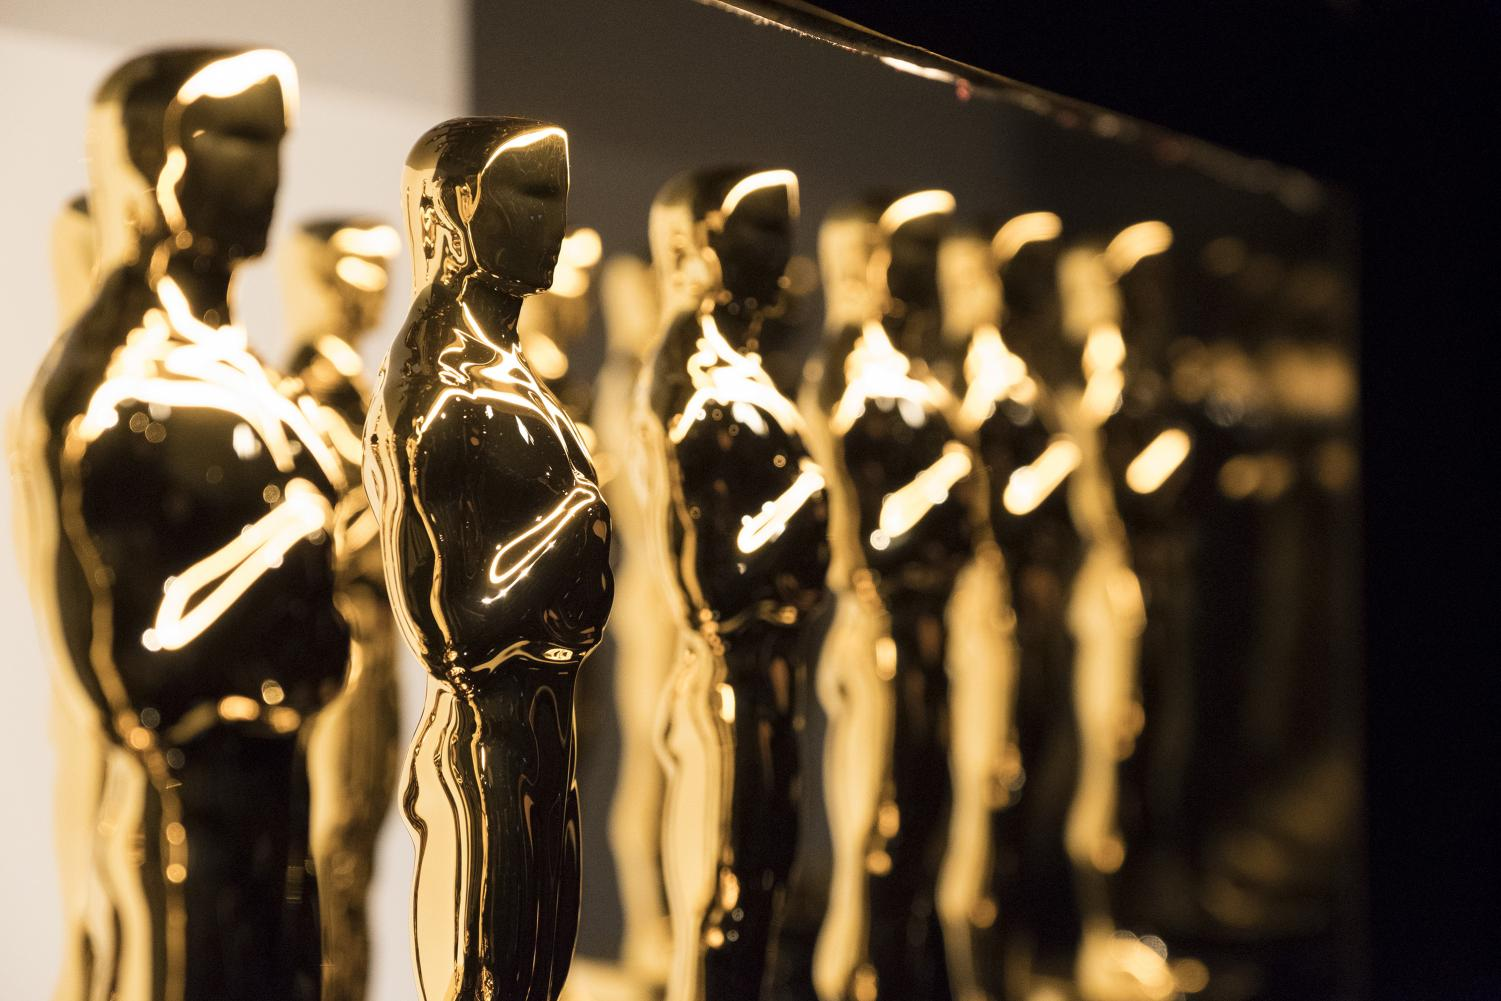 The 2019 Academy Awards have given more than 30 nominations to films featuring people of color. (COURTESY OF DISNEY/ABC TELEVISION GROUP)